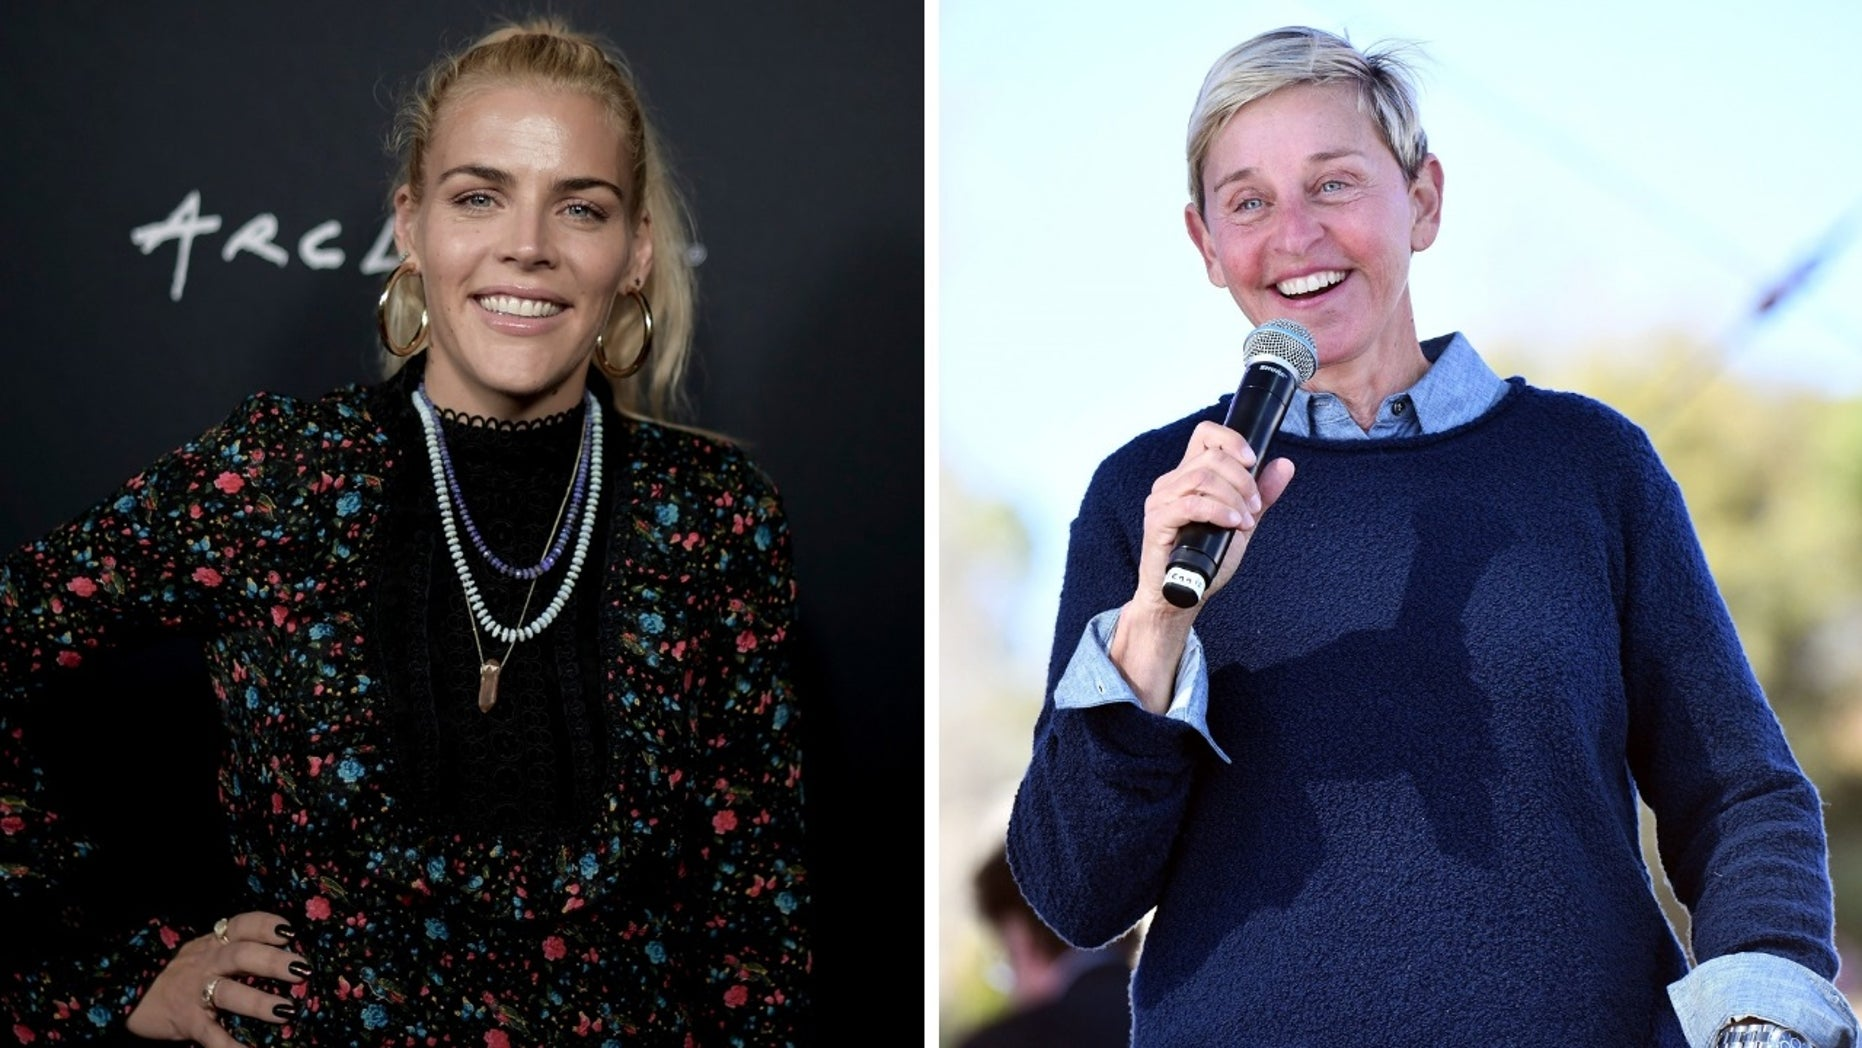 Ellen DeGeneres was a victim of sexual misconduct, too